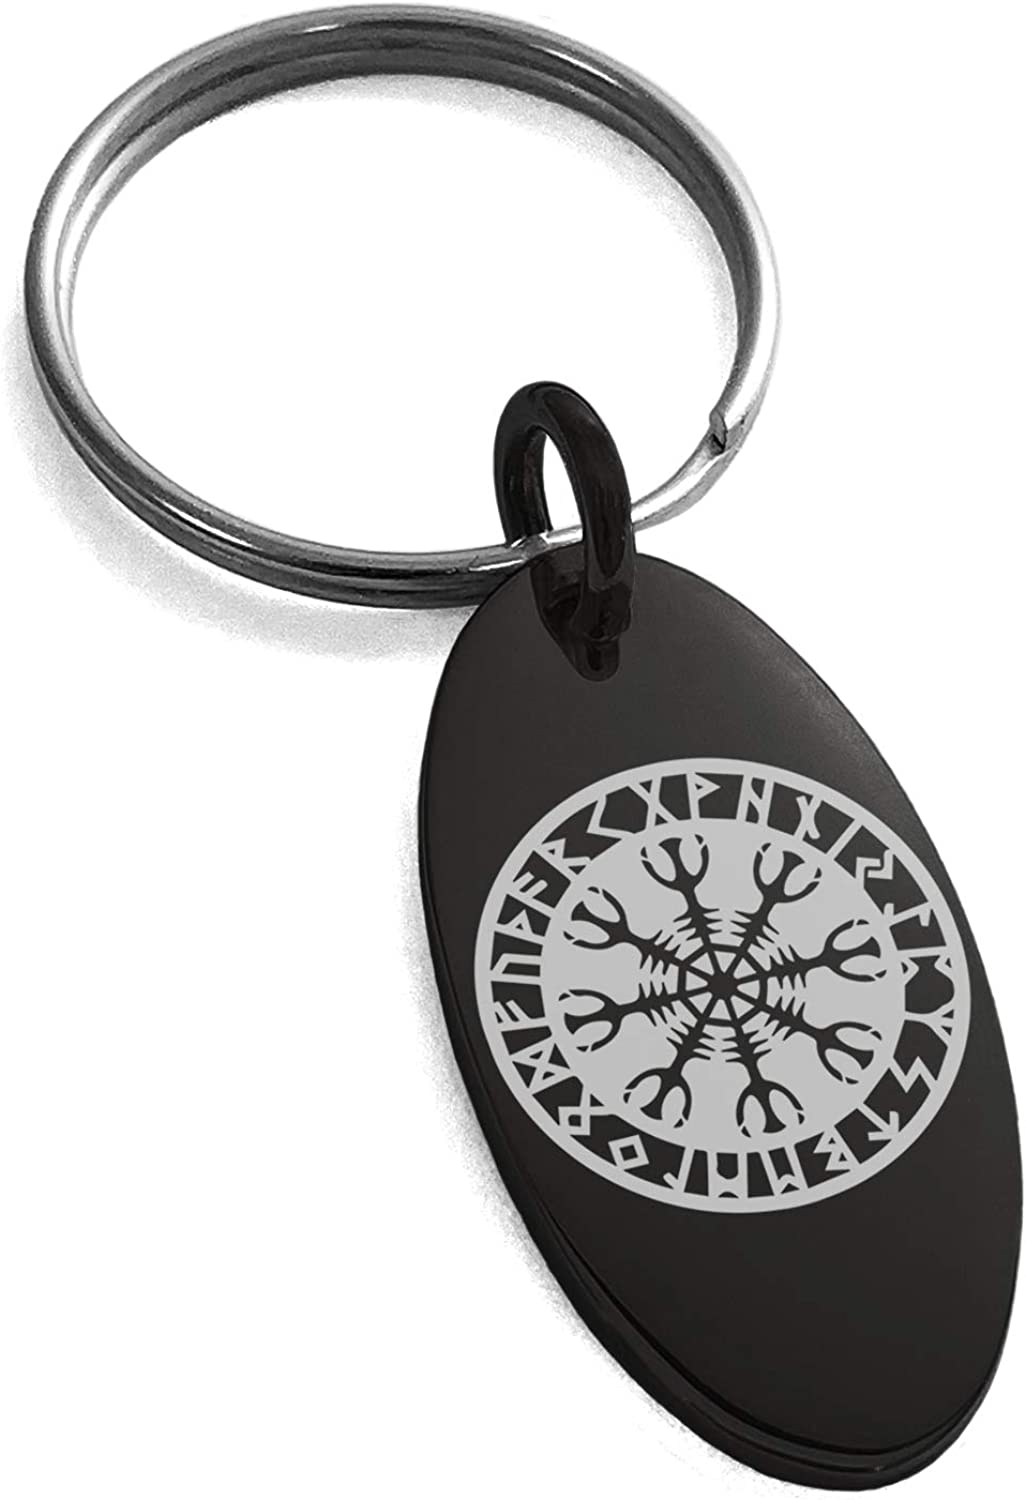 Tioneer Stainless Steel Helm of Awe Viking Norse Symbol Small Oval Charm Keychain Keyring